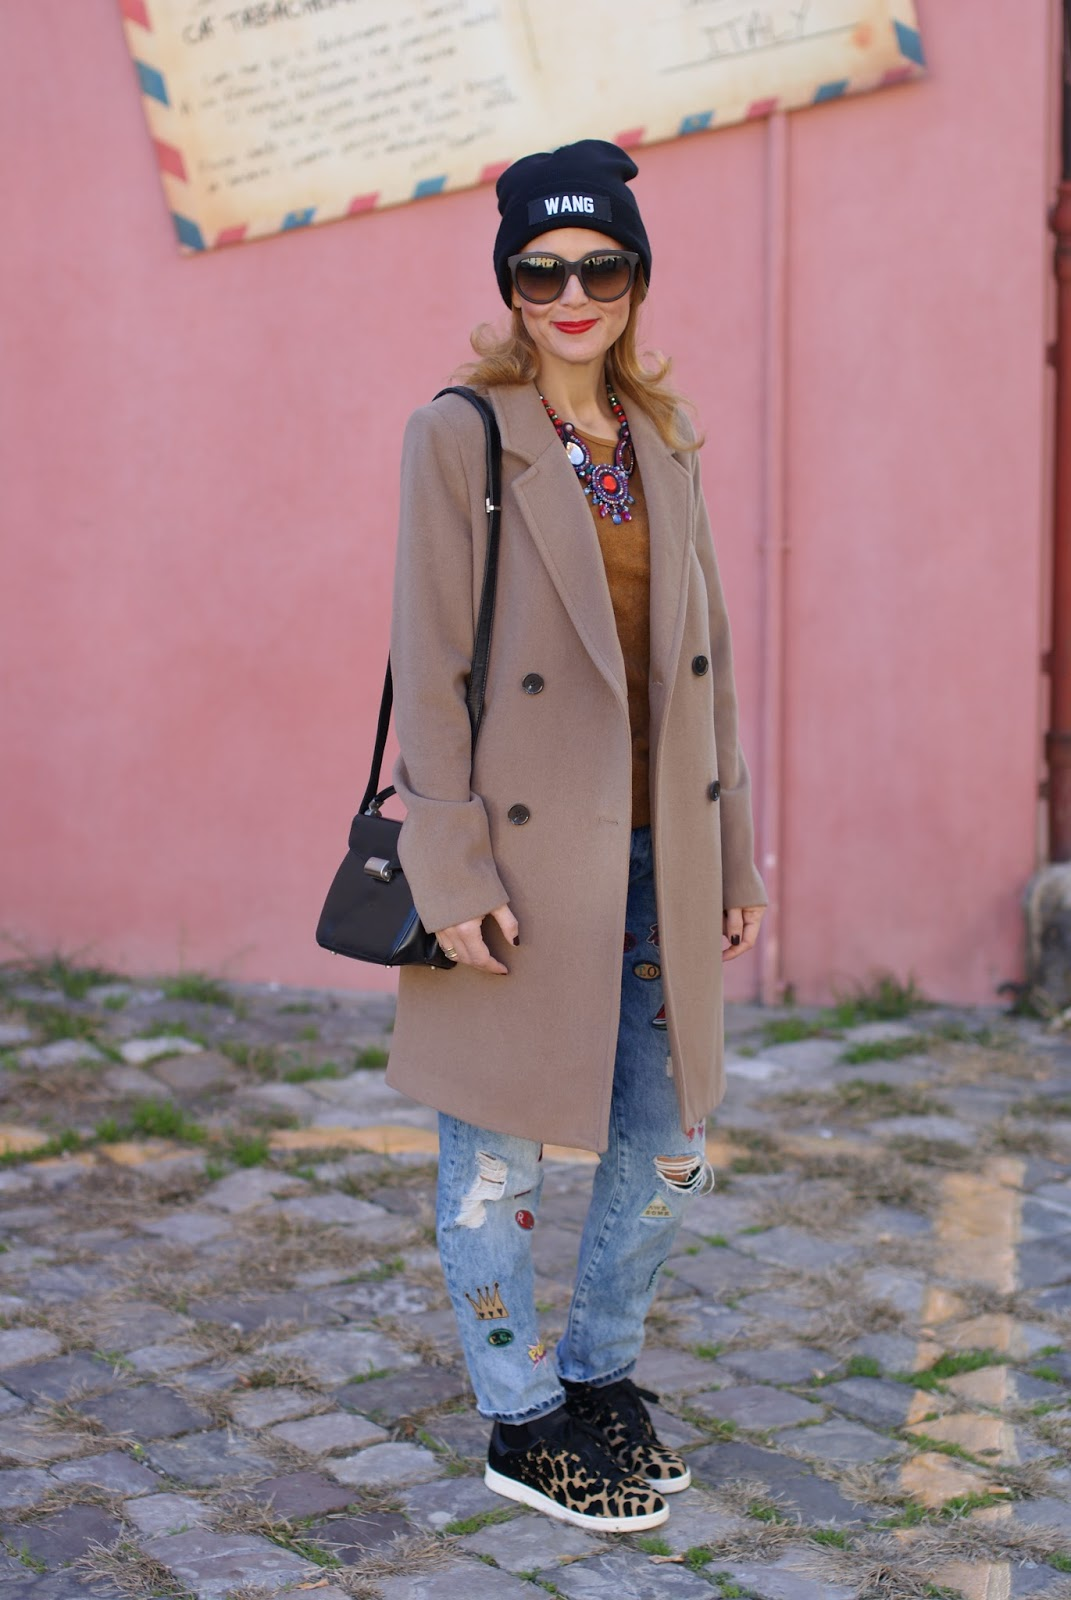 Wang beanie, Zara patched jeans, adidas stan smith sneakers leopard cardboard and camel boyfriend coat on Fashion and Cookies fashion blog, fashion blogger style